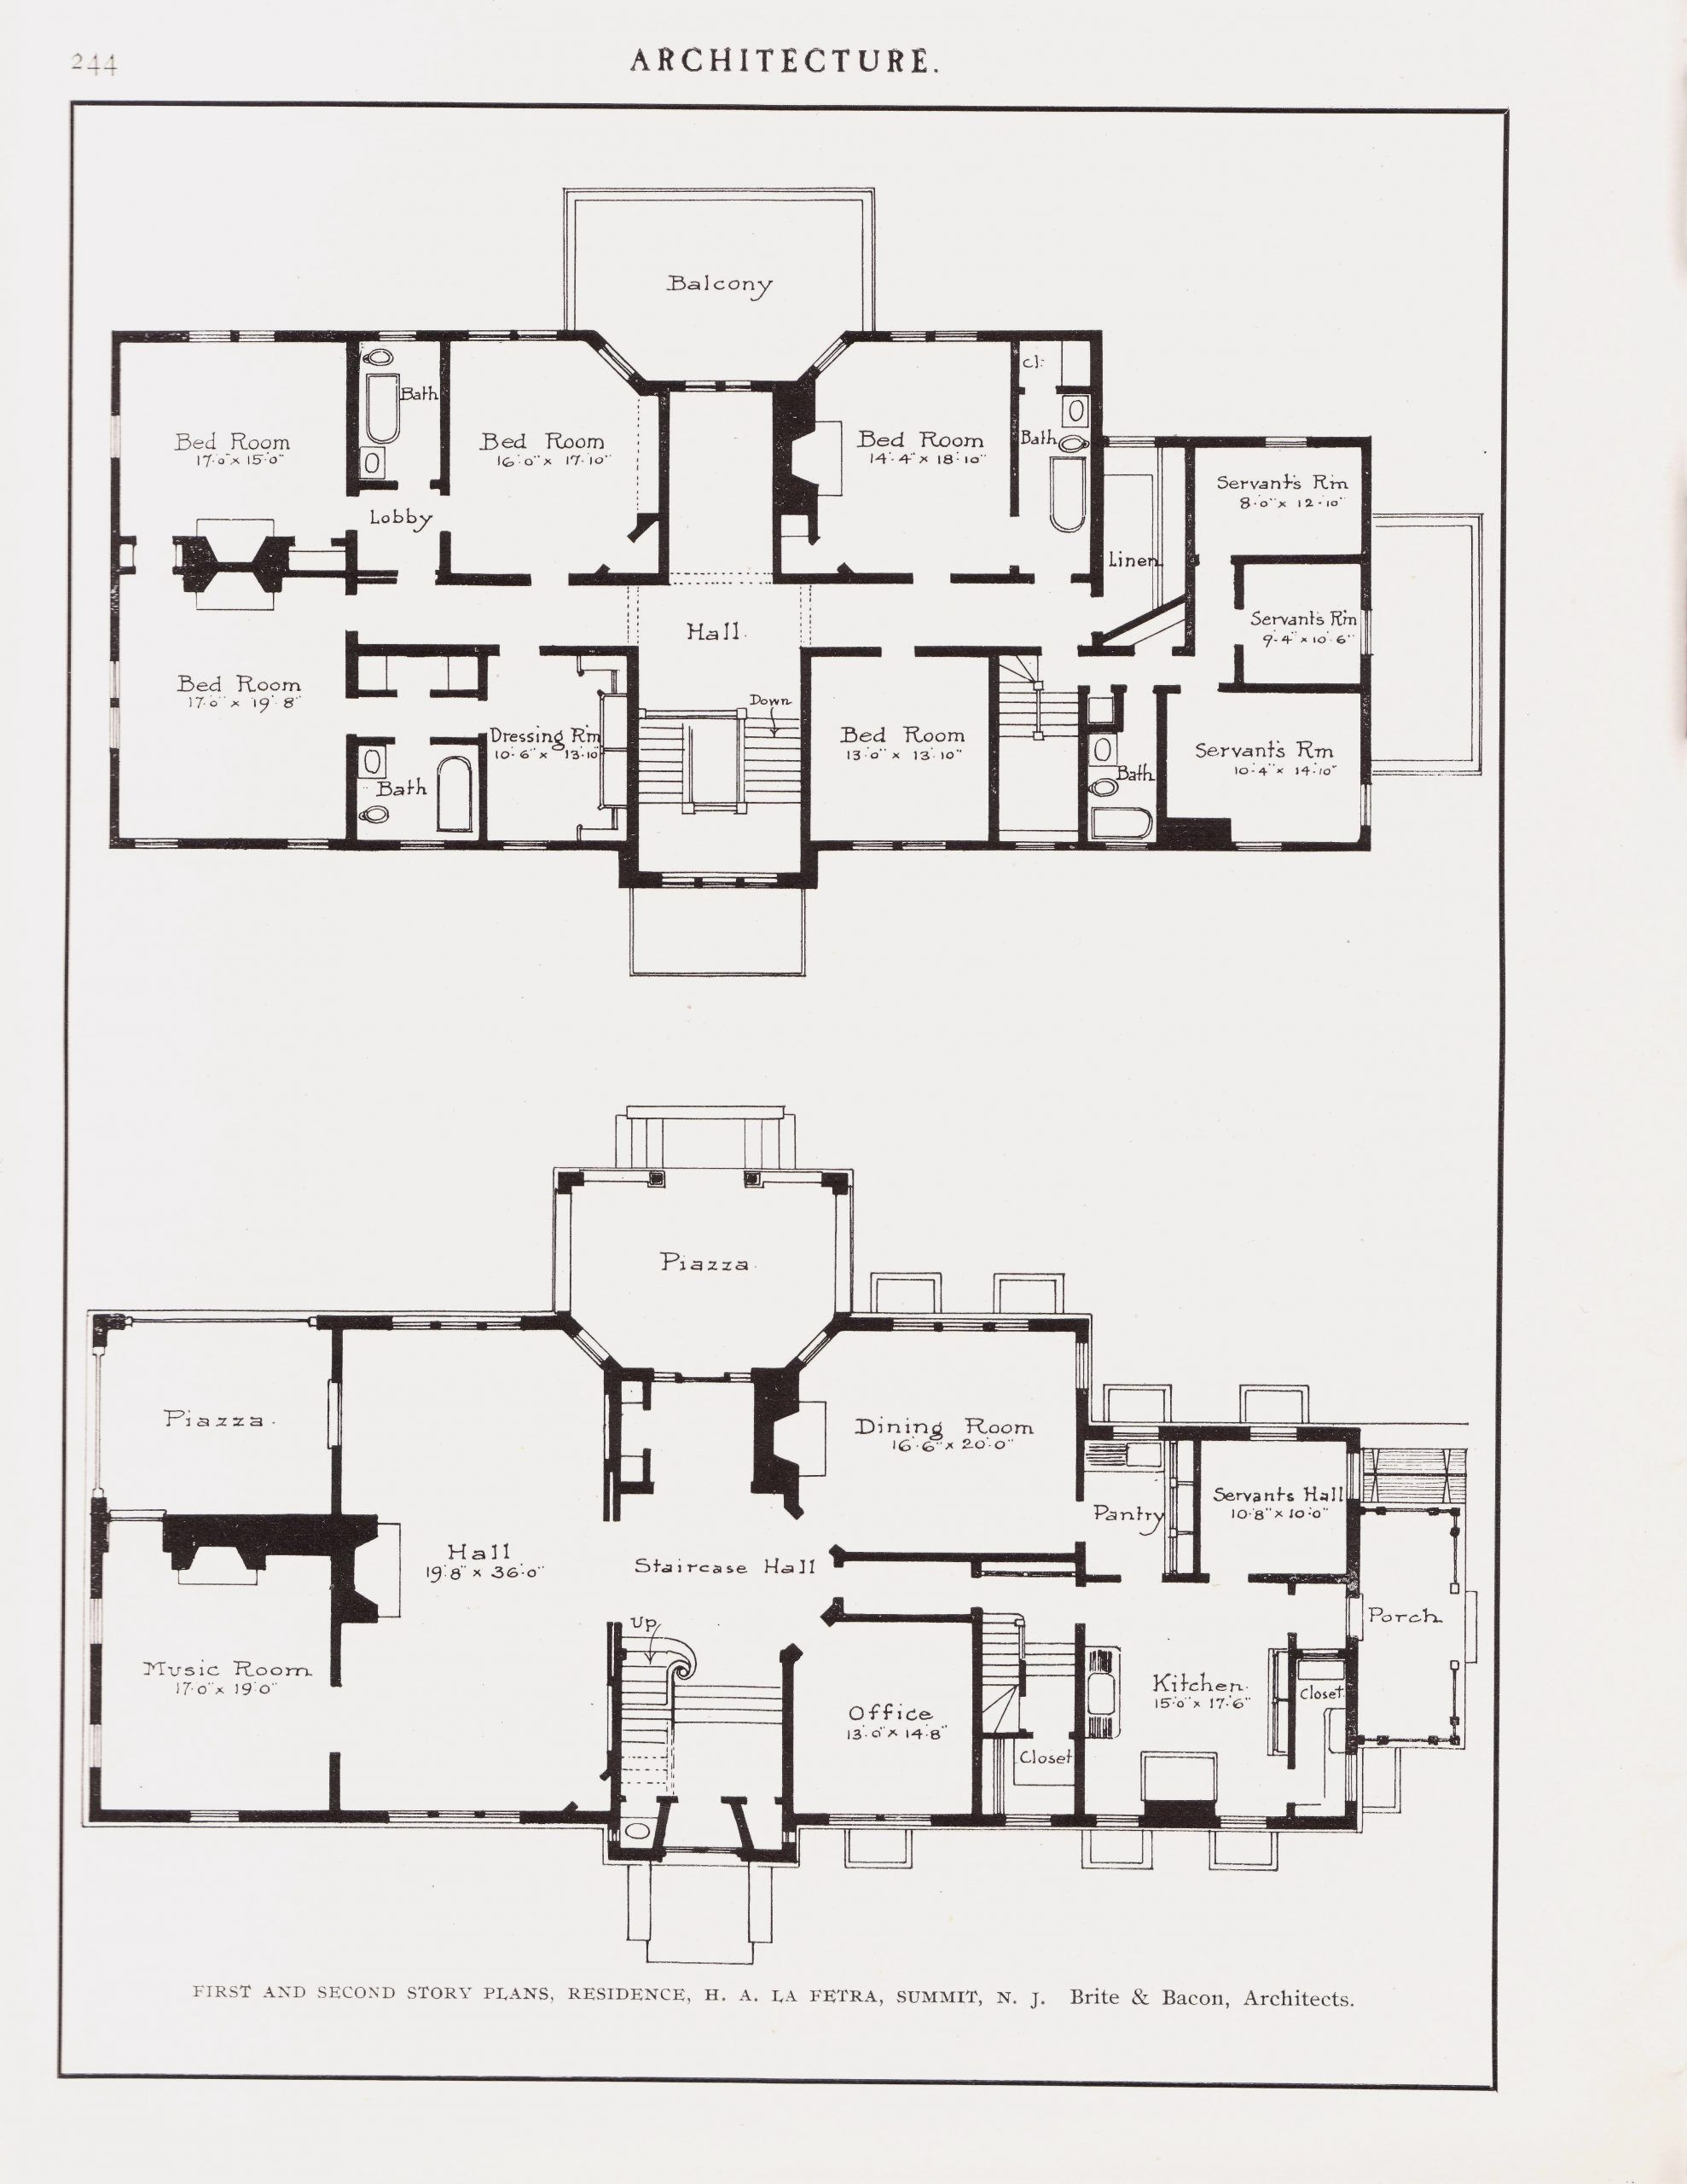 16 House Floor Plan Design Software Free In 2020 Free House Plan Software Home Design Software Free House Plans